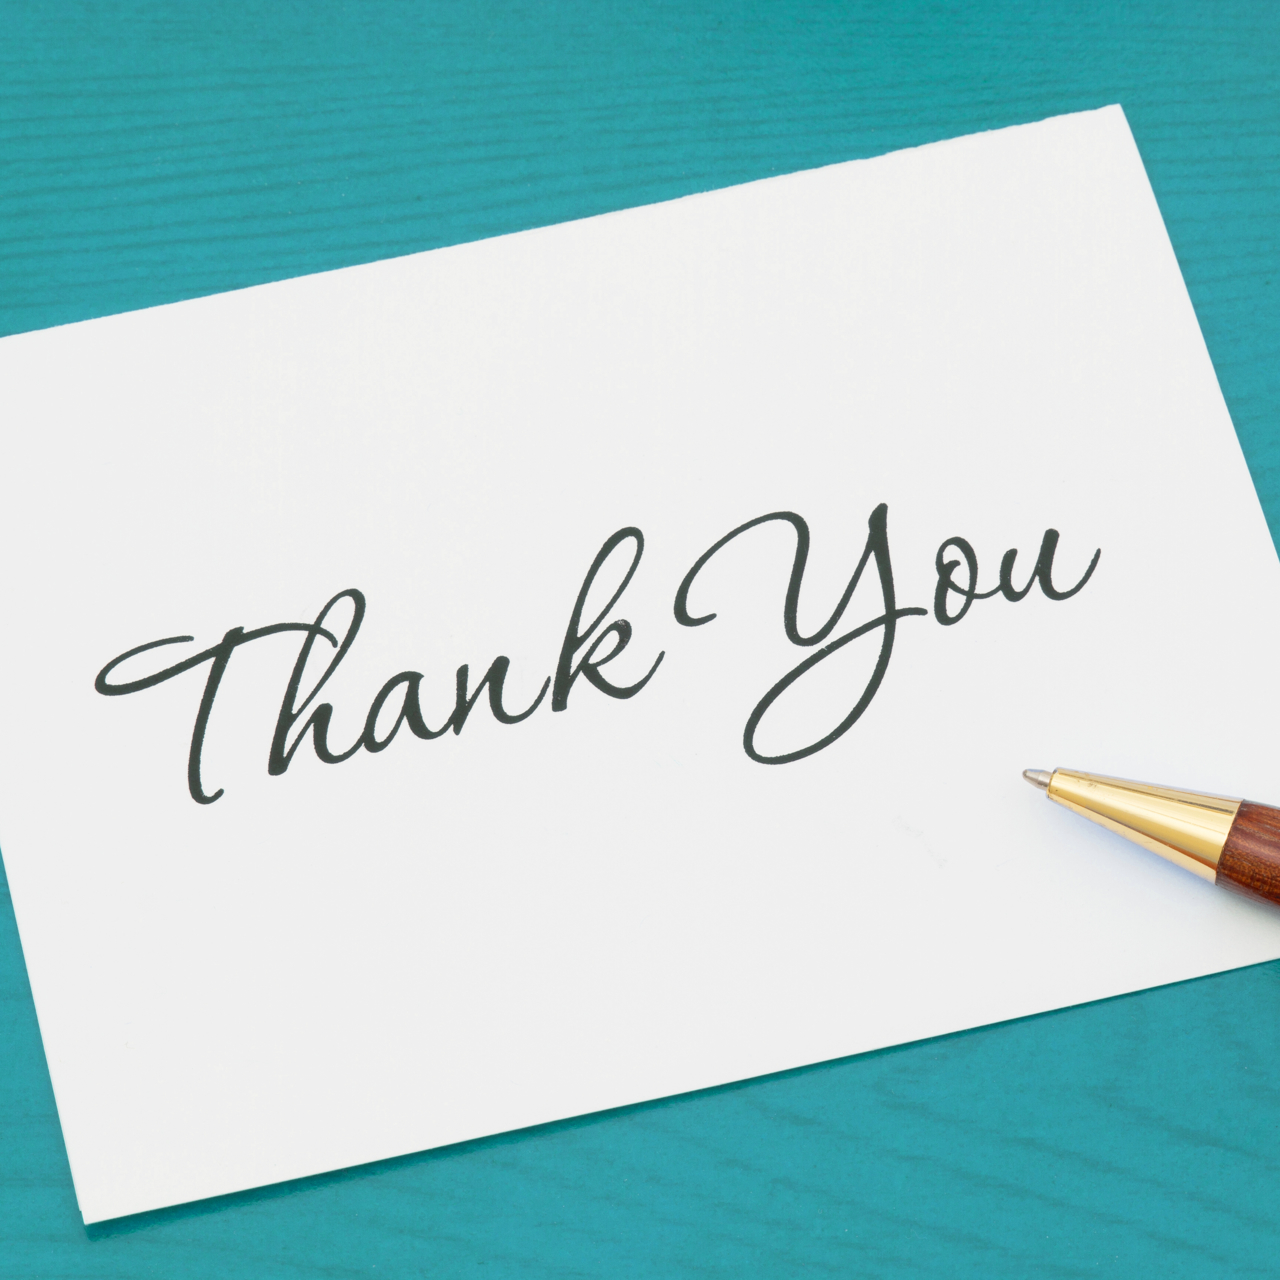 Sponsorship Relationships: A Personal Thank You Goes a Long Way in Sponsorship